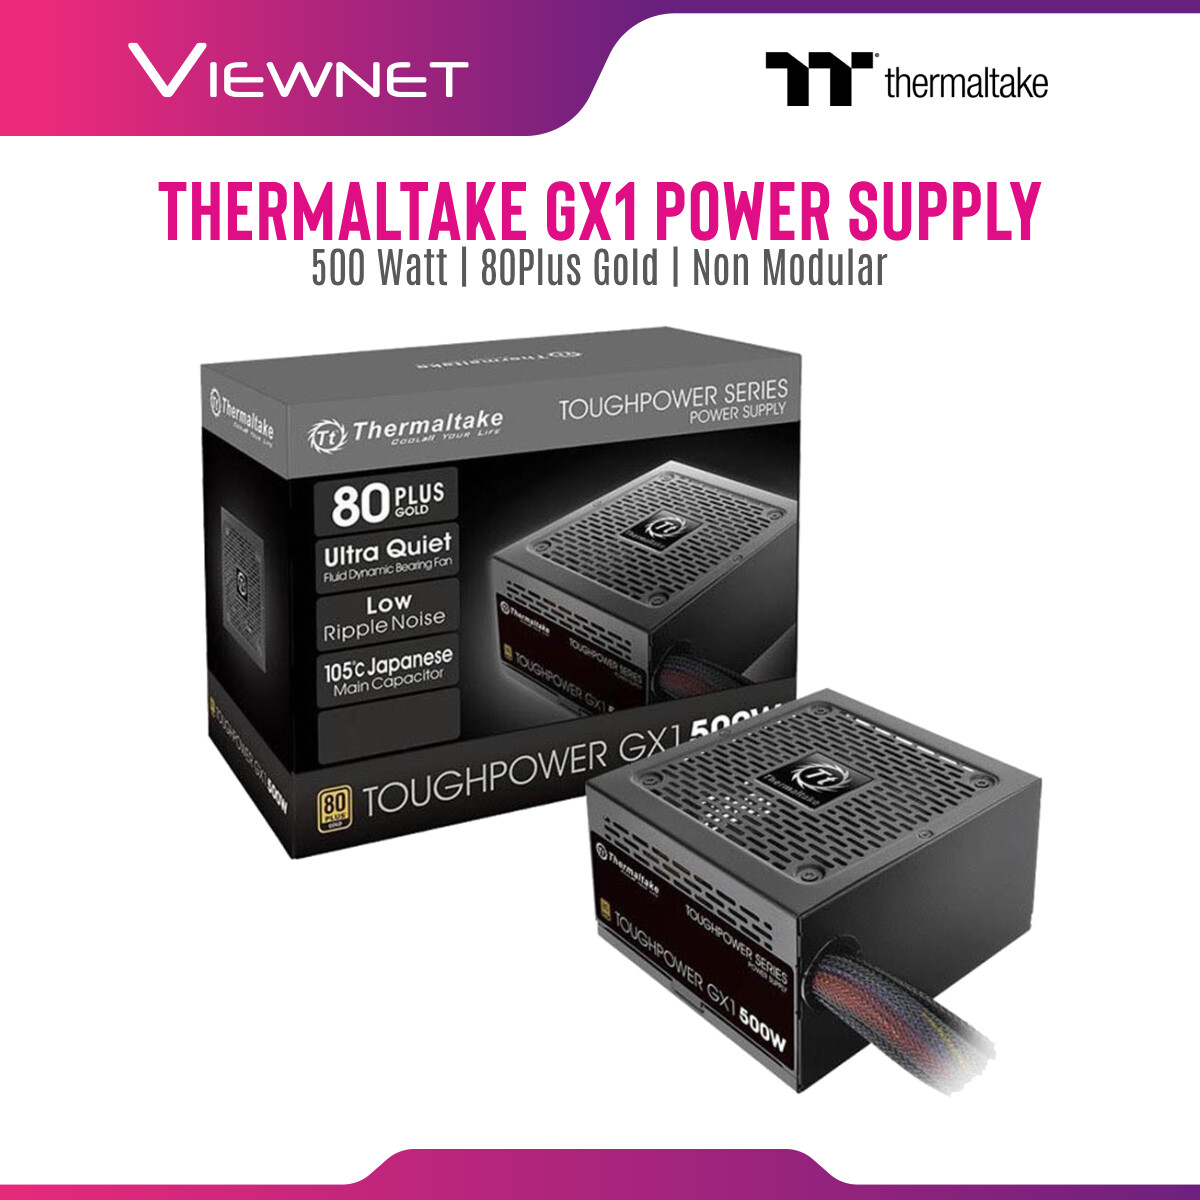 Thermaltake (PS-TPD-0500NNFAGK) Power Supply GX1 500W 80Plus Gold